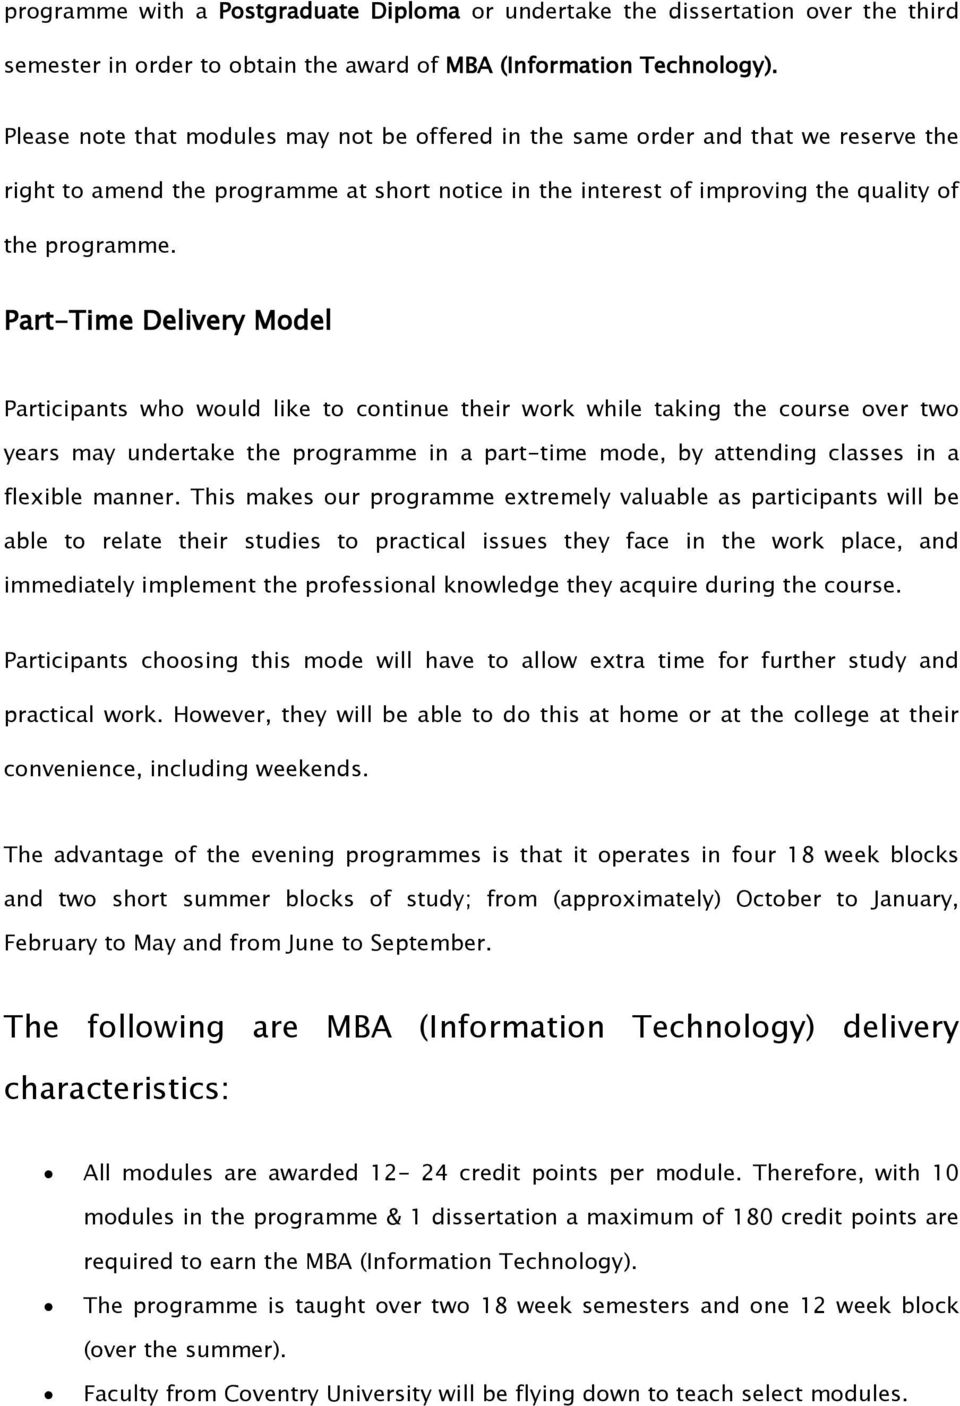 Part-Time Delivery Model Participants who would like to continue their work while taking the course over two years may undertake the programme in a part-time mode, by attending classes in a flexible